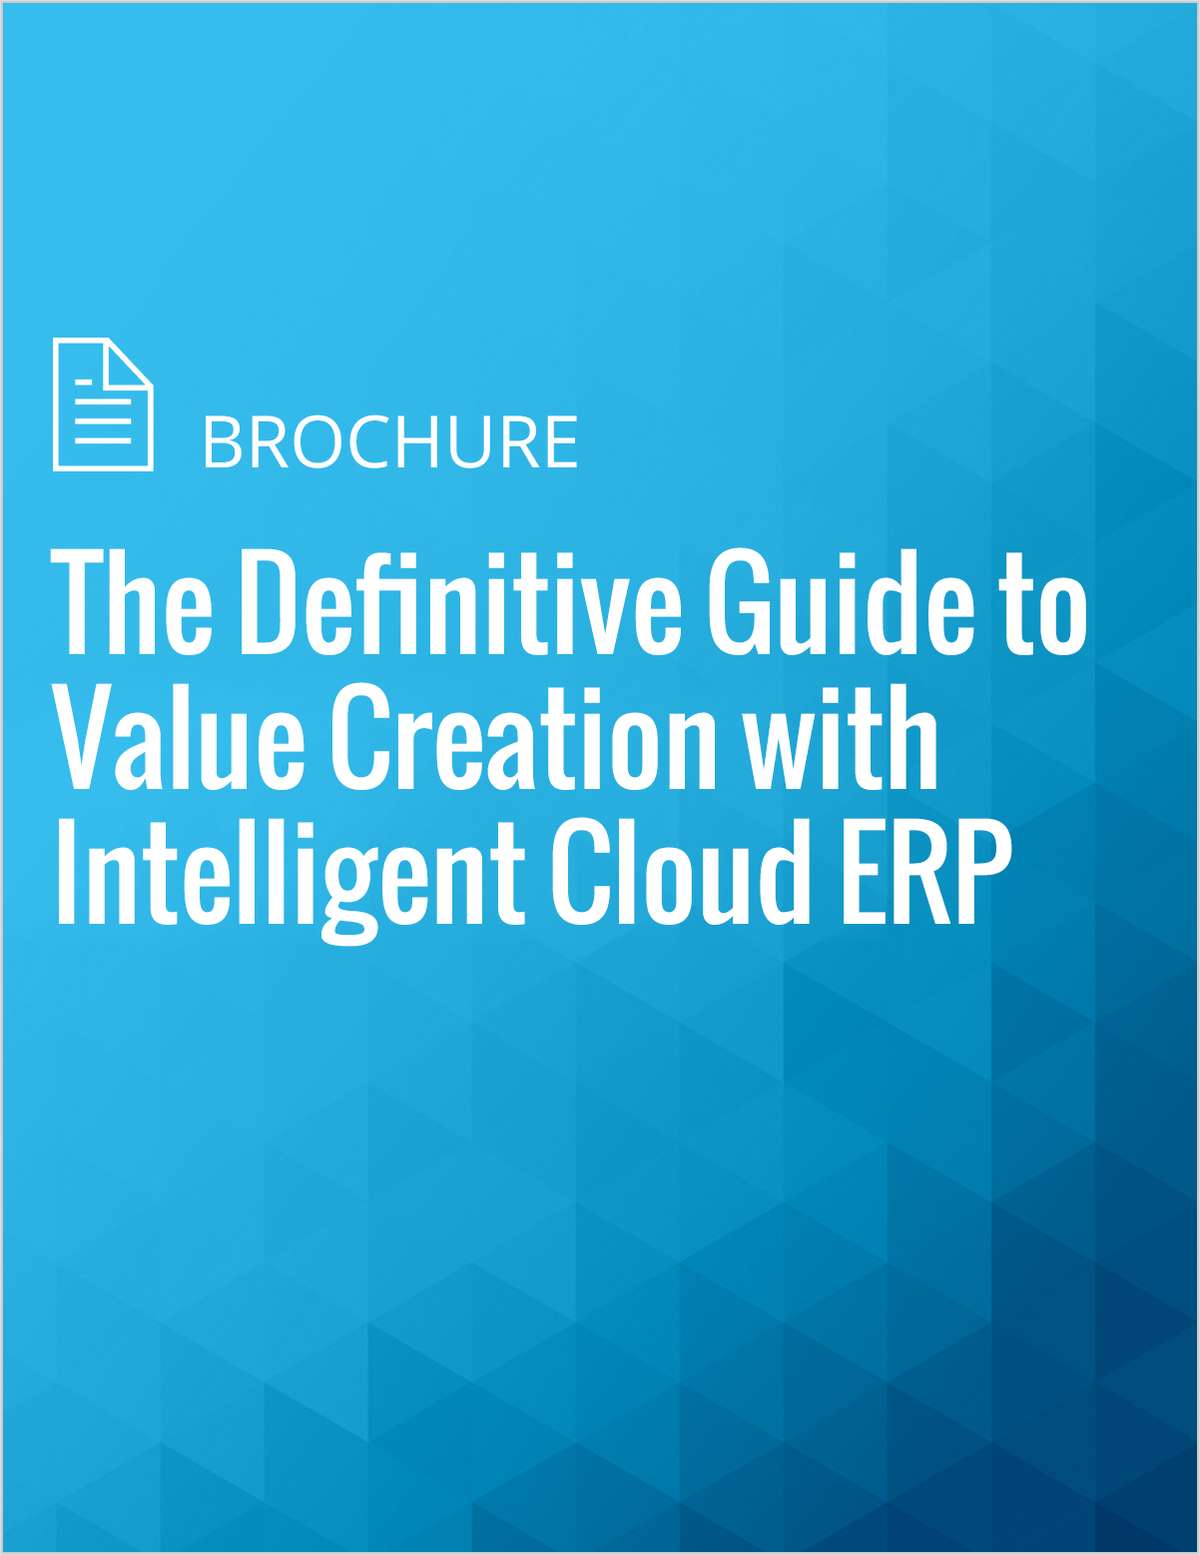 The Definitive Guide to Value Creation with Intelligent Cloud ERP